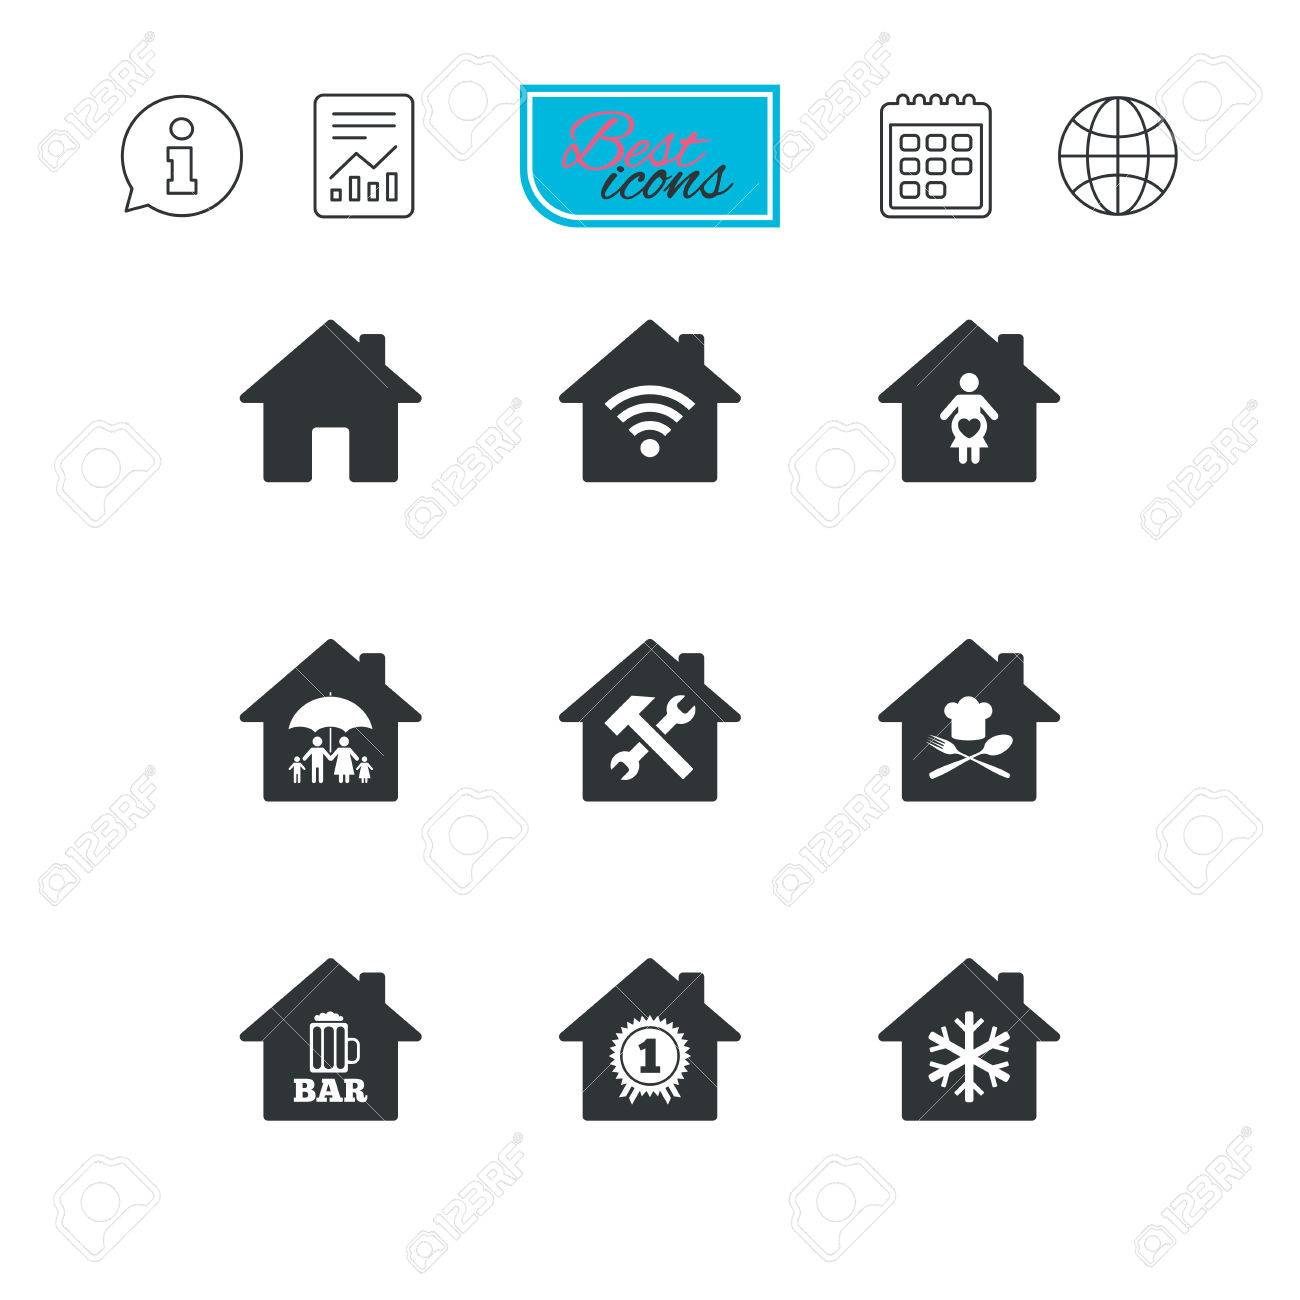 Home Wireless Internet Symbol Wire Center Plumbingwarehousecom Delta Bathroom Faucet Parts For Model 2540 Real Estate Icons Insurance Maternity Hospital And Wifi Rh 123rf Com Hp Connection Symbols